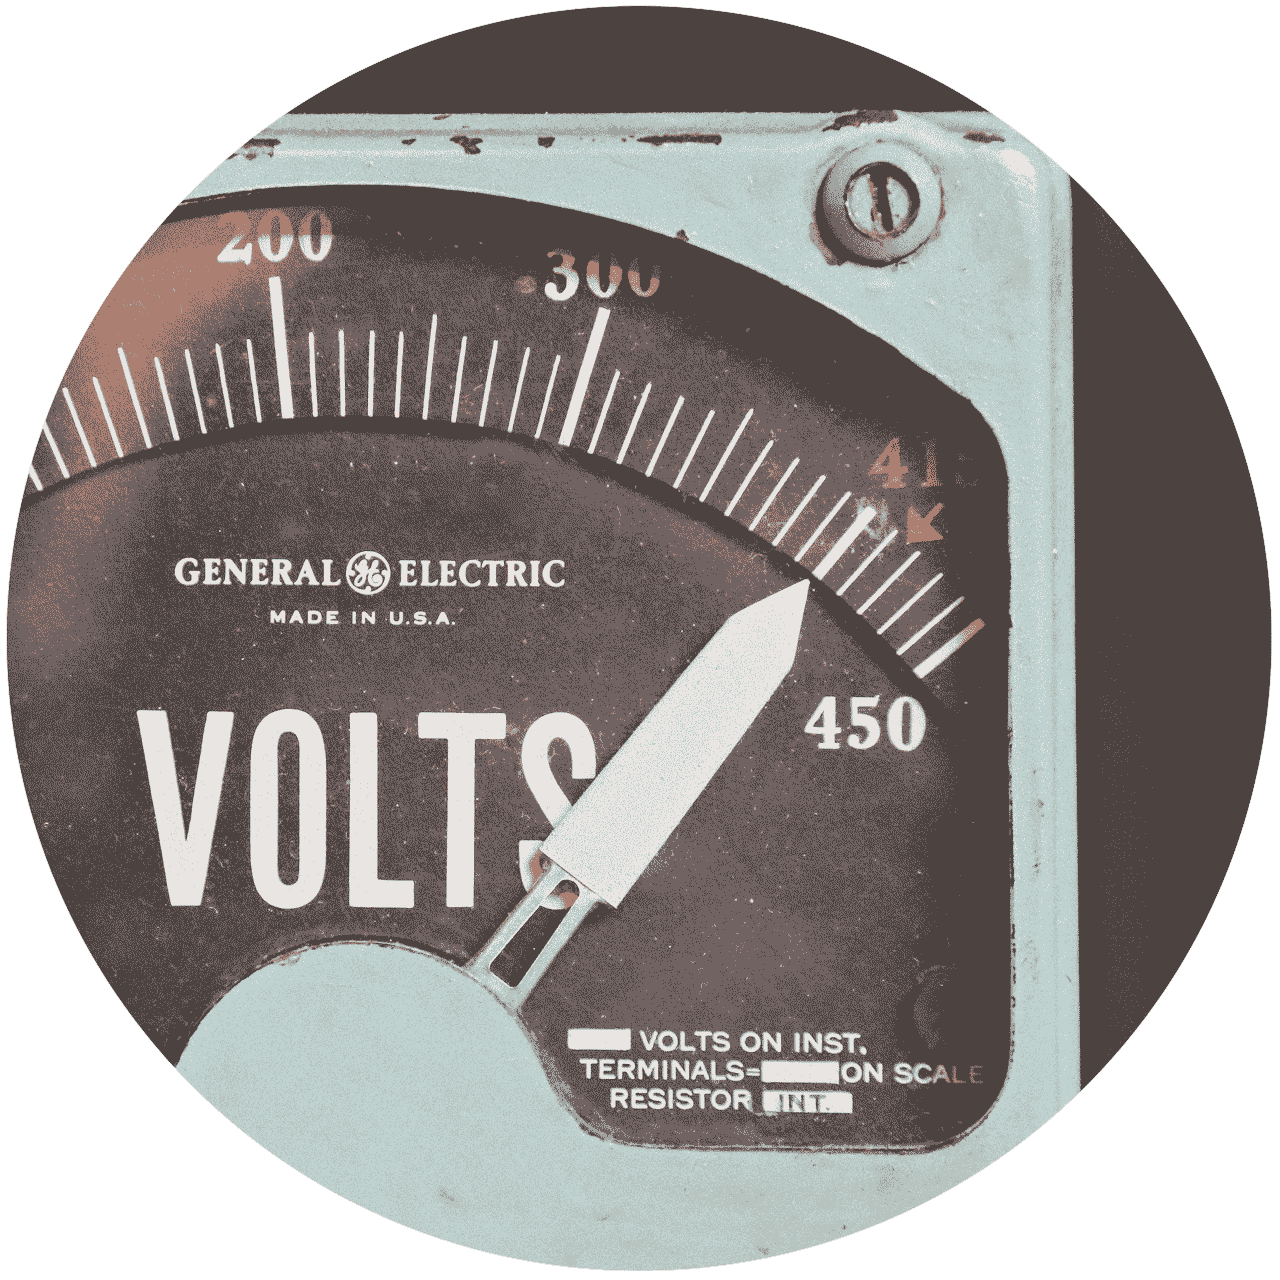 An old and worn, brown and white voltmeter's arrow points to 415 volts.